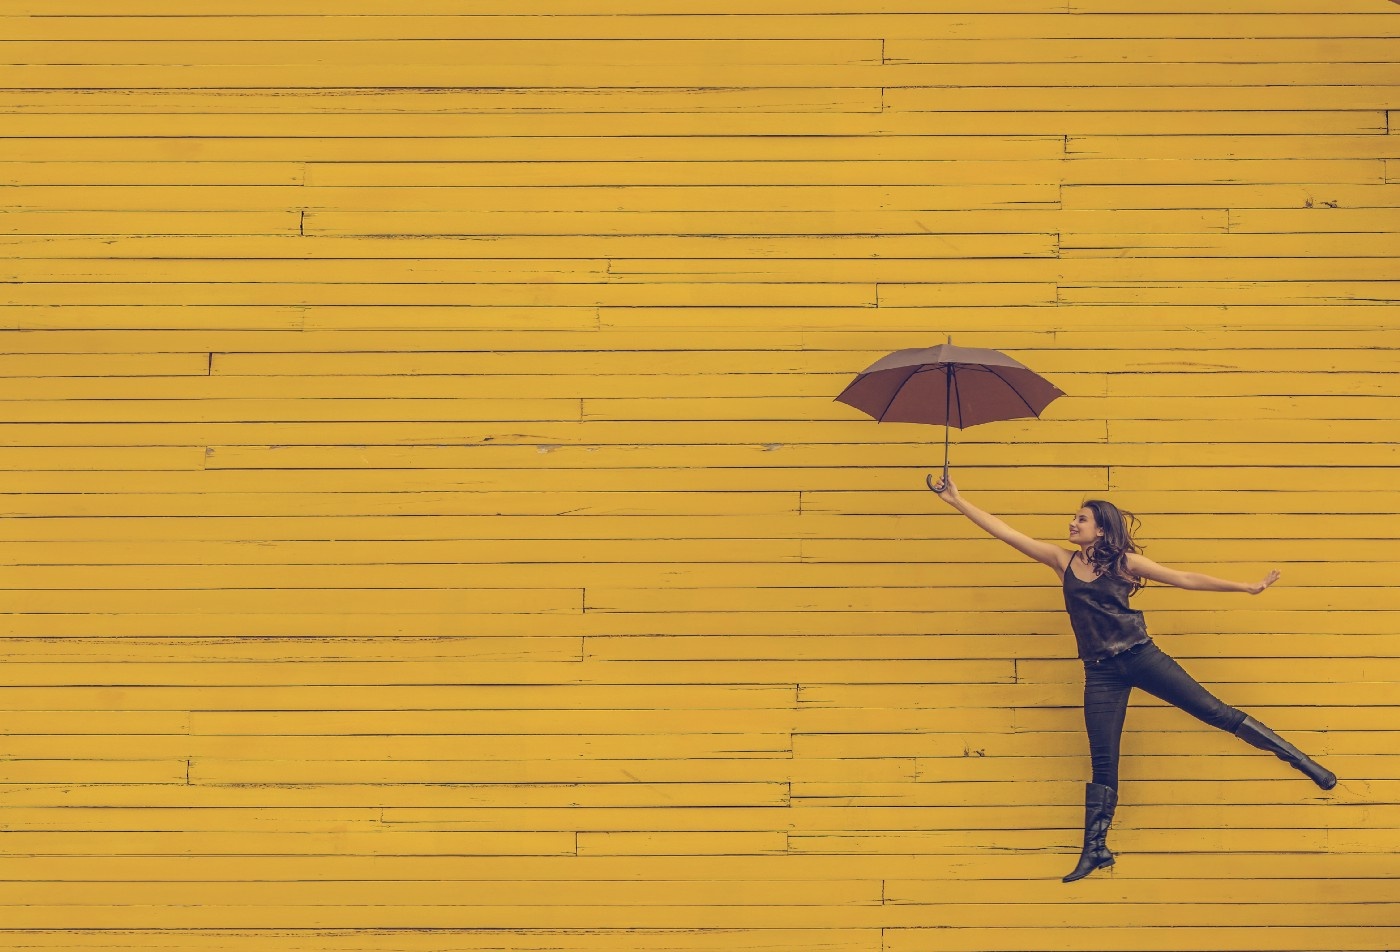 An artsy shot of a random woman holding an umbrella as she leaps in front of a striking yellow background.